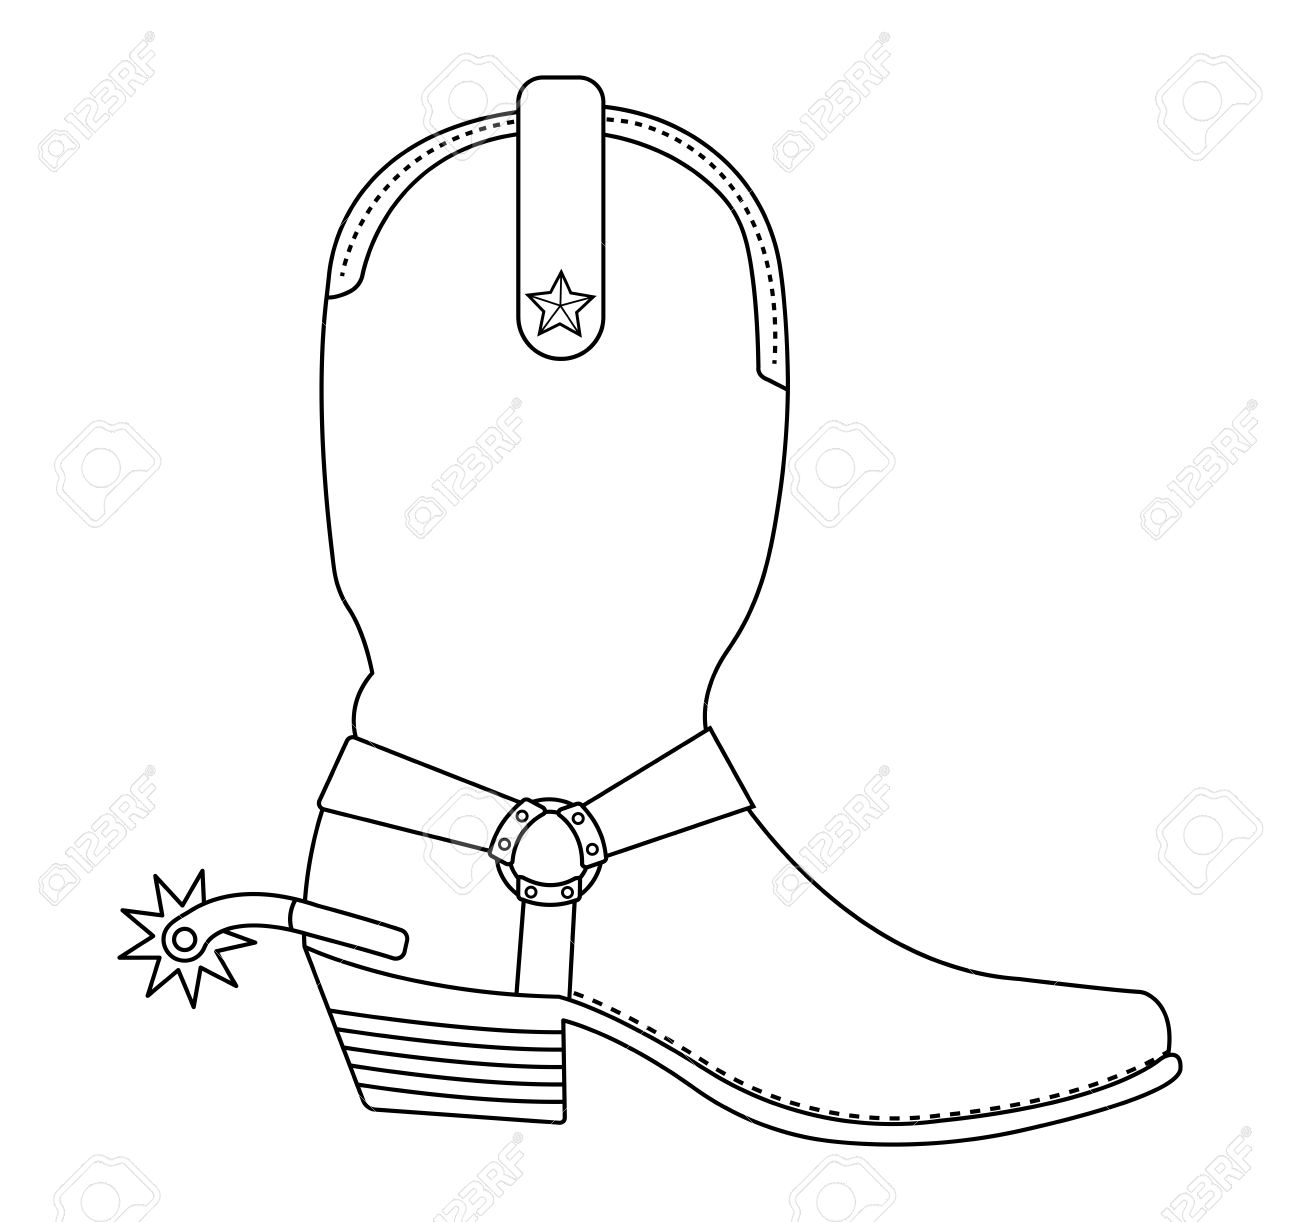 Clipart cowboy boot svg freeuse Free Western Boot Cliparts, Download Free Clip Art, Free Clip Art on ... svg freeuse